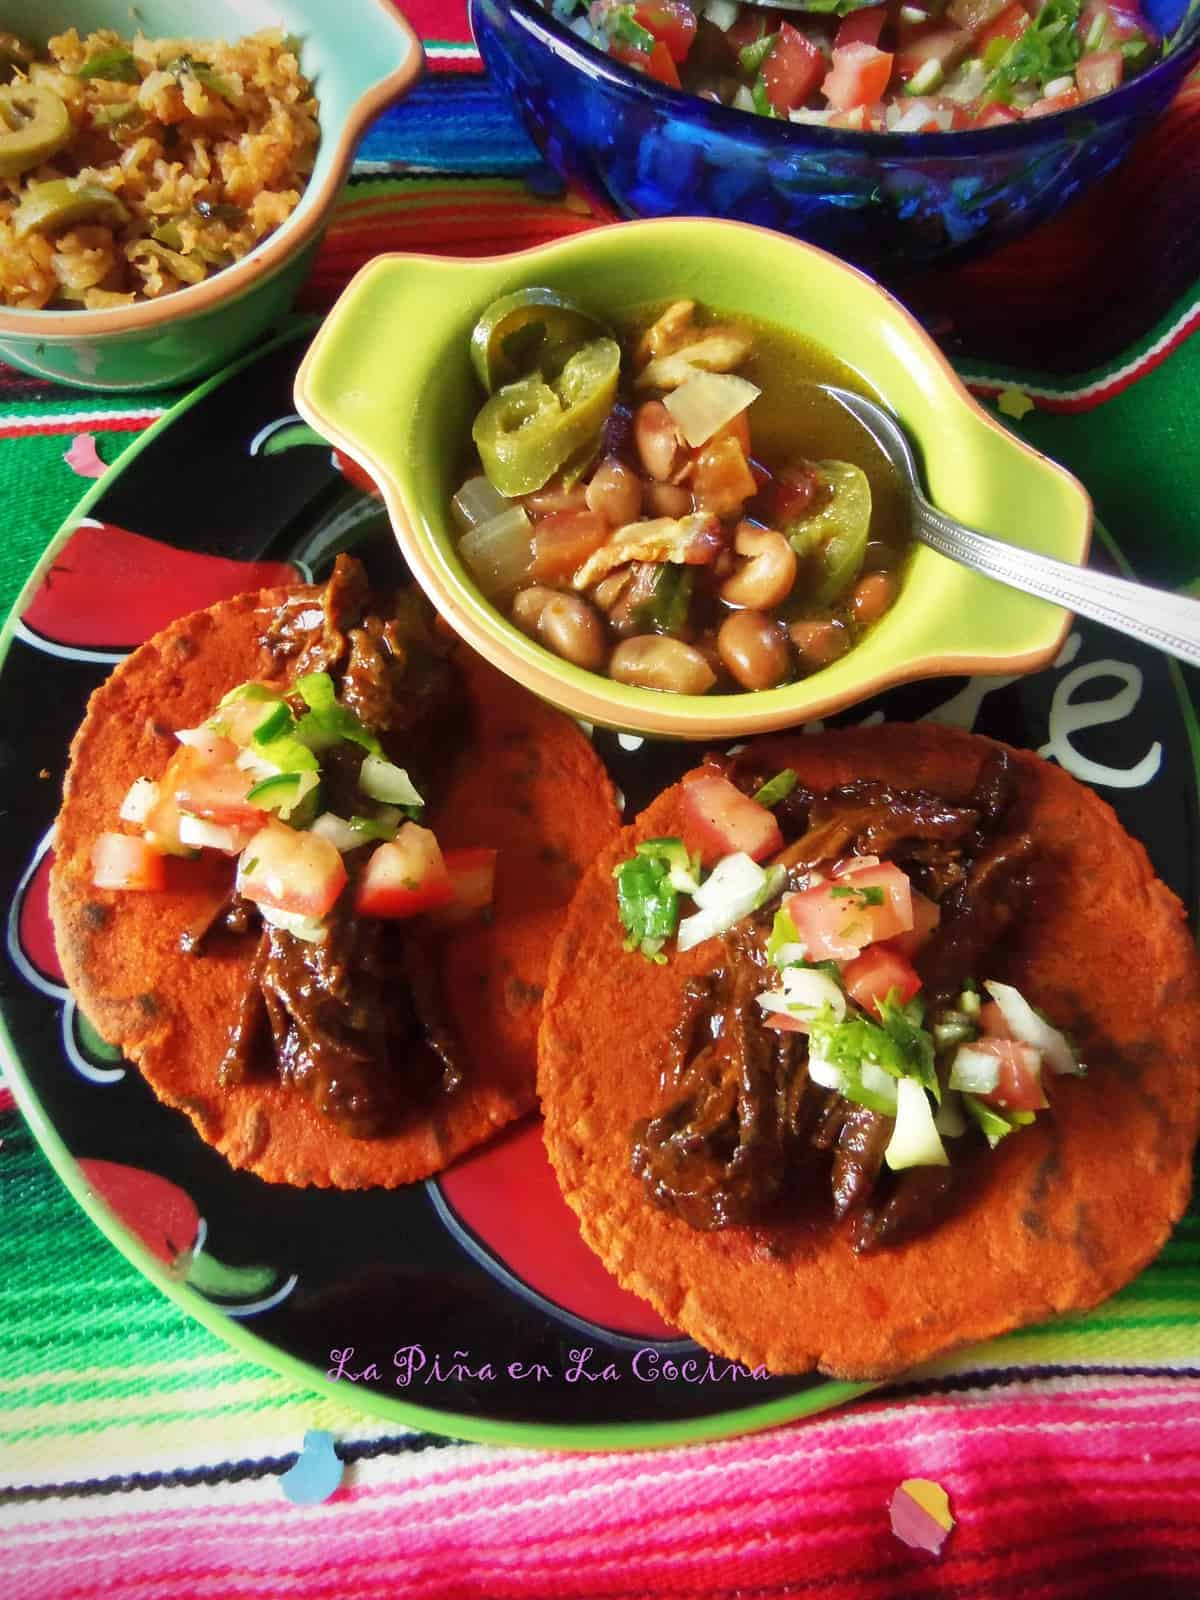 Homemade Chile Infused Corn Tortillas were Perfect For These Tacos